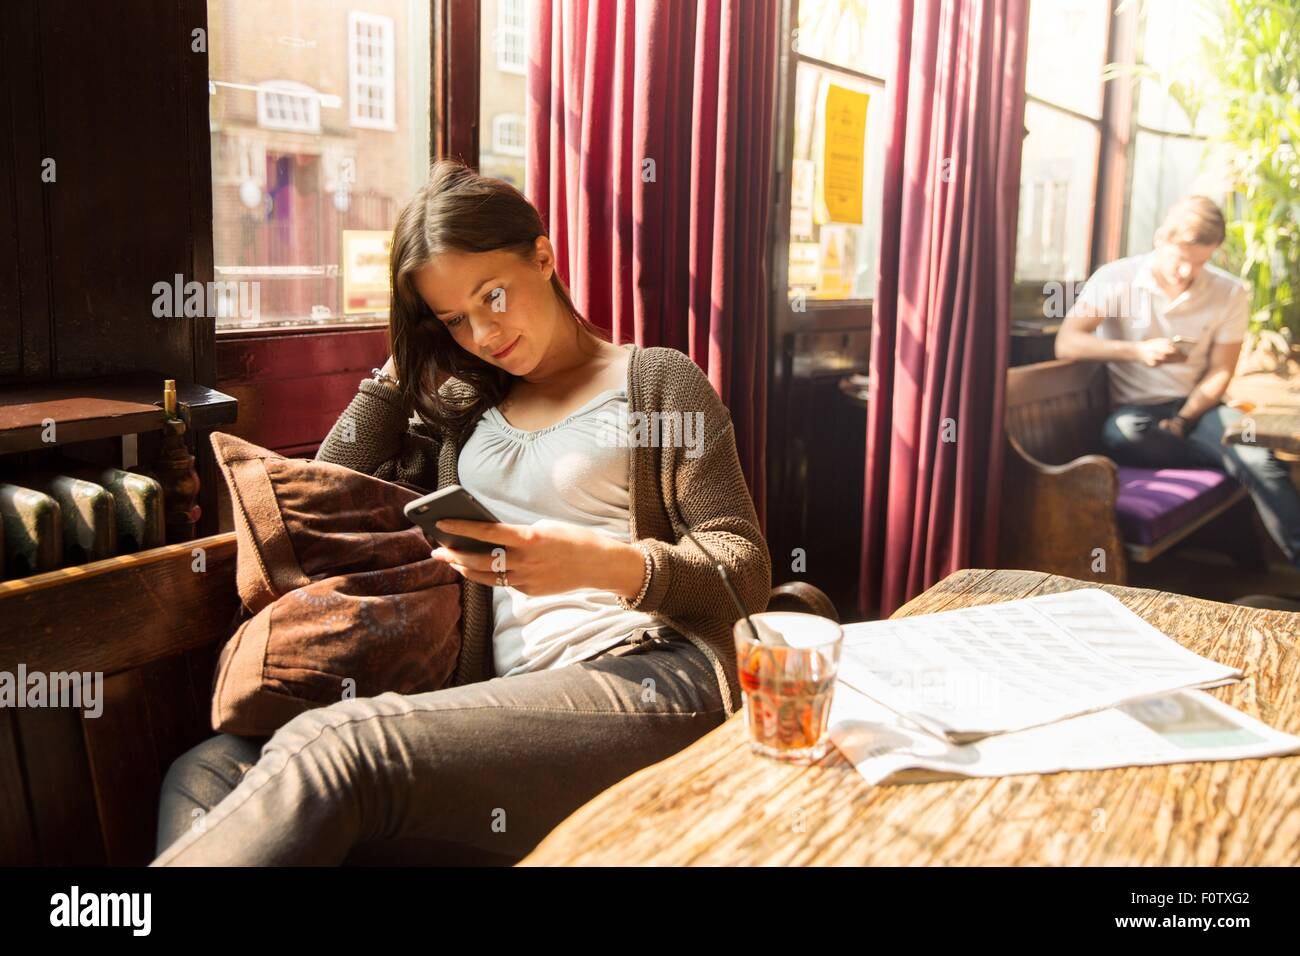 Mid adult woman looking at smartphone Banque D'Images